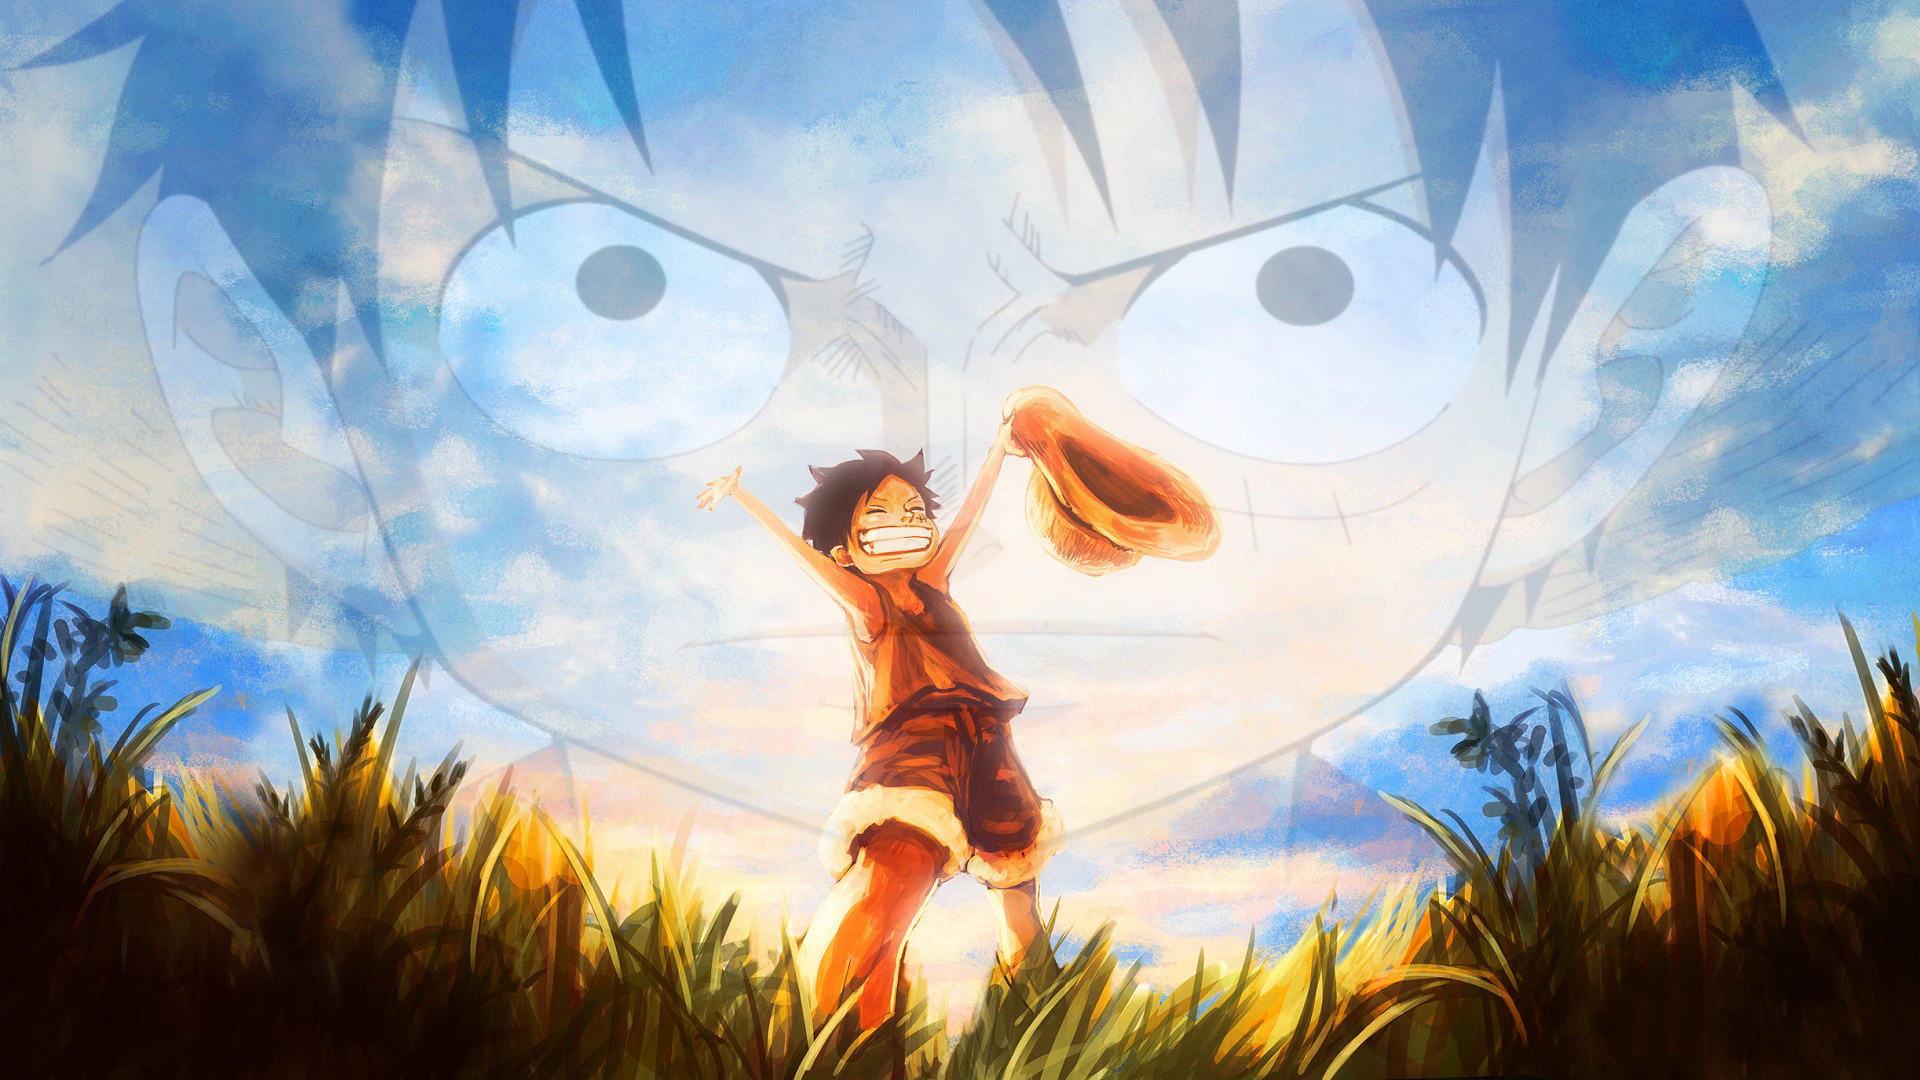 One Piece Young And Older Monkey D Luffy Hd Wallpaper Background Image 1920x1080 Id 857192 Wallpaper Abyss